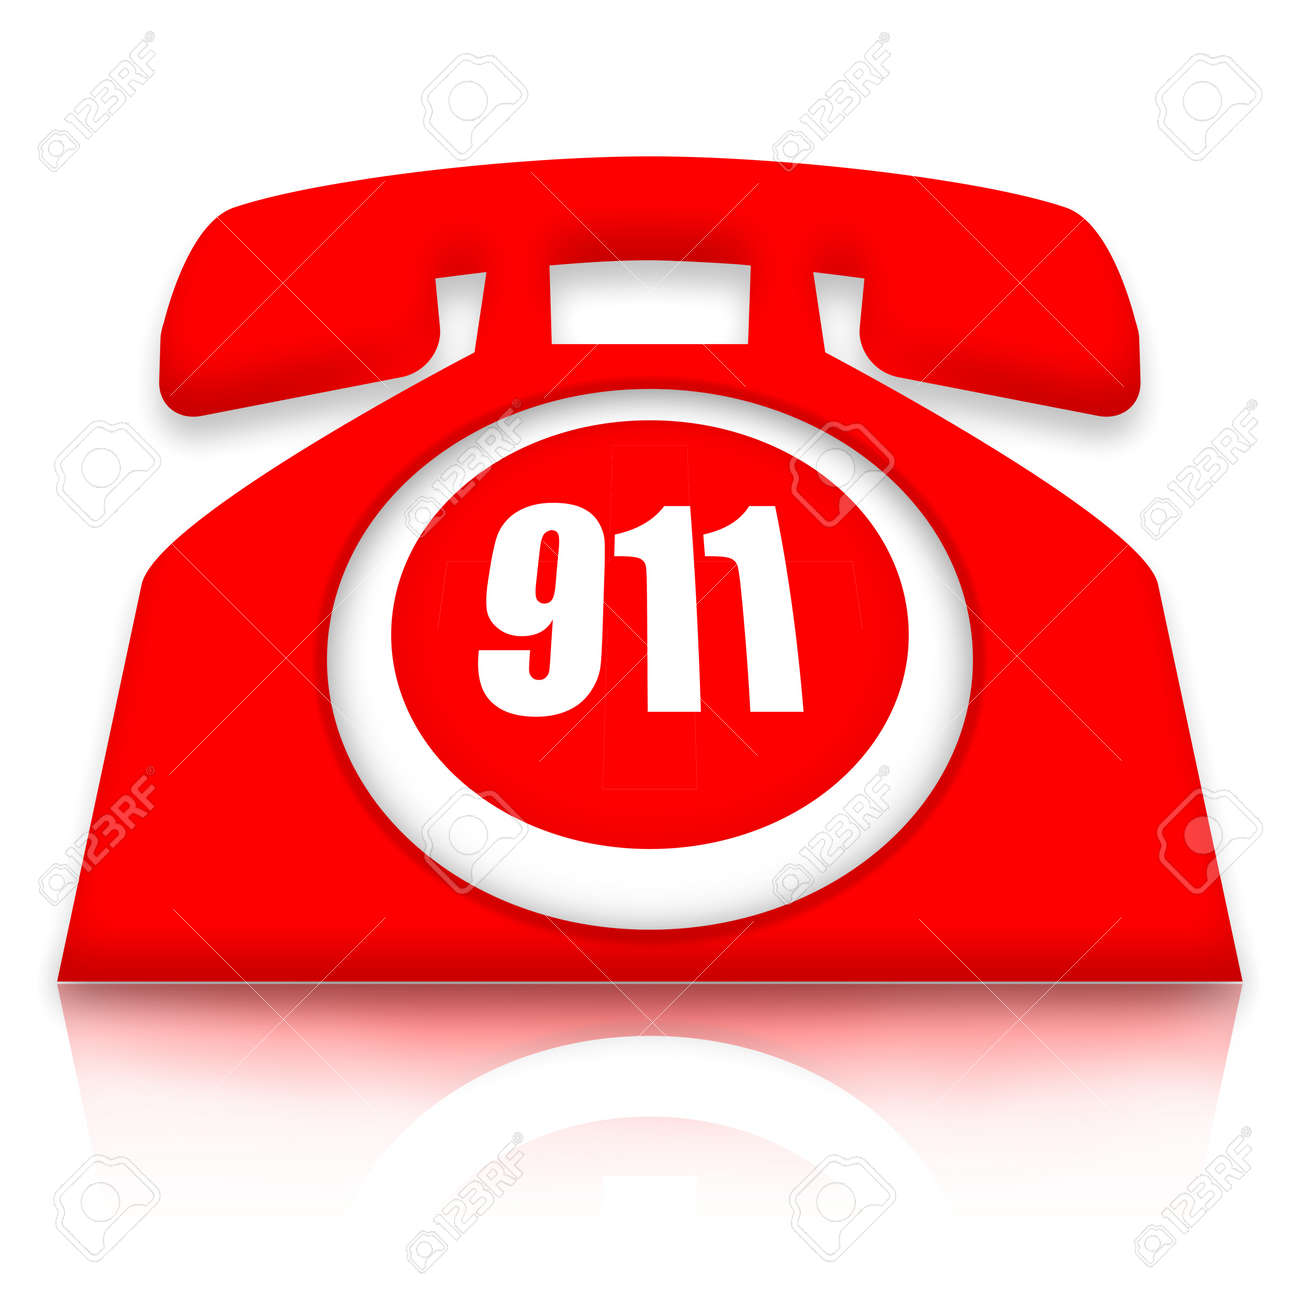 Emergency stop icon clipart emergency off - Emergency Button Emergency Phone With 911 Nomber Over White Background Stock Photo